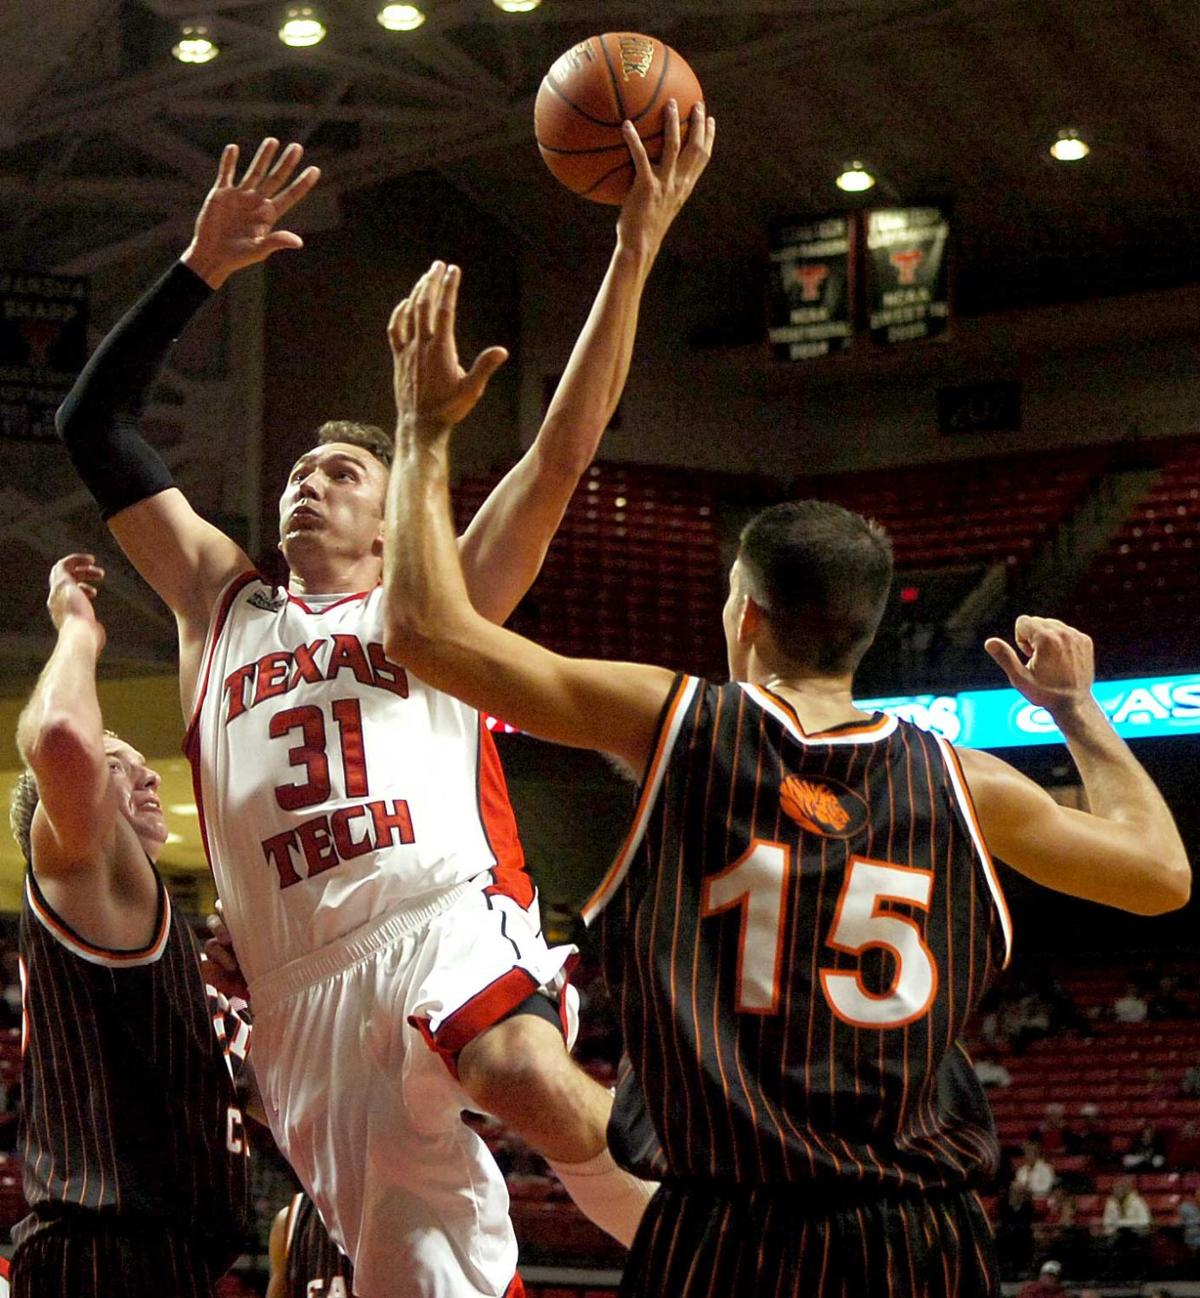 Texas Tech tops Tigers in Legends Classic, 167-115 | Local News ...